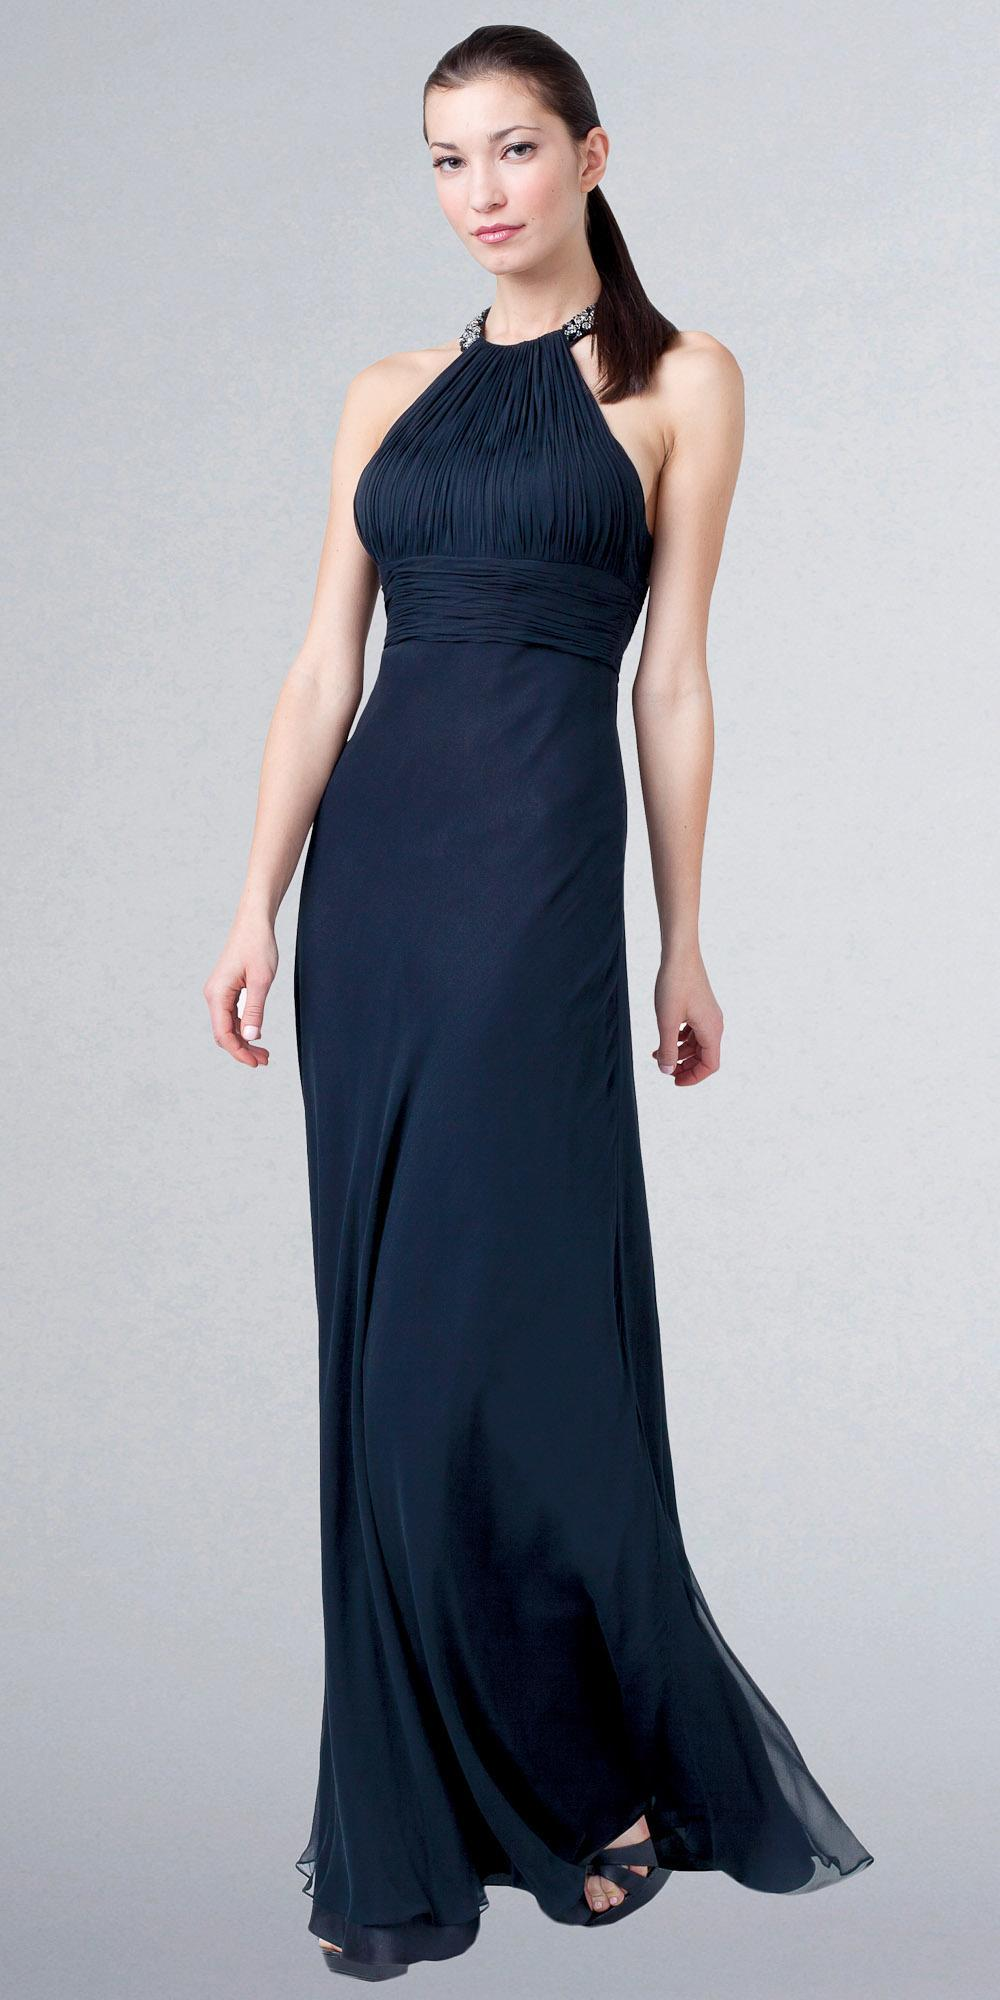 16 Beautiful Evening Dresses For Women This Season